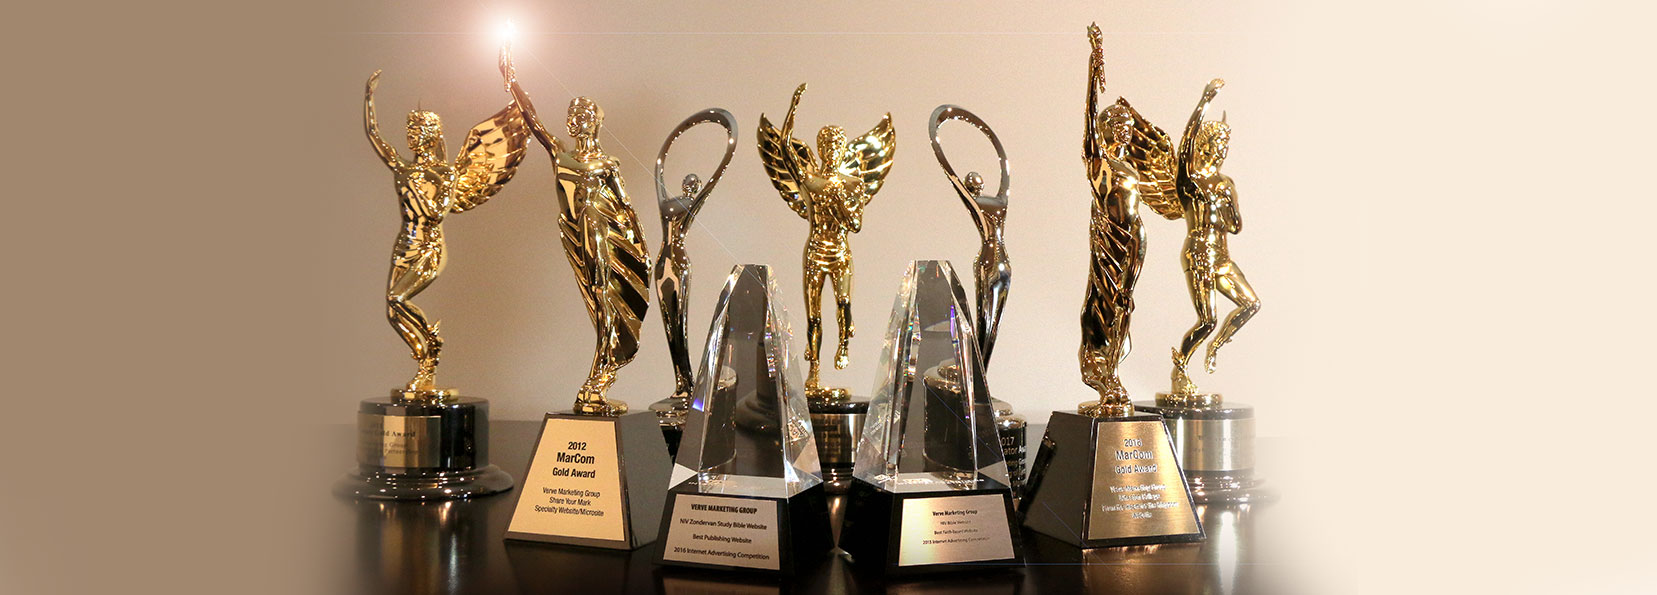 Verve Marketing Group award trophies